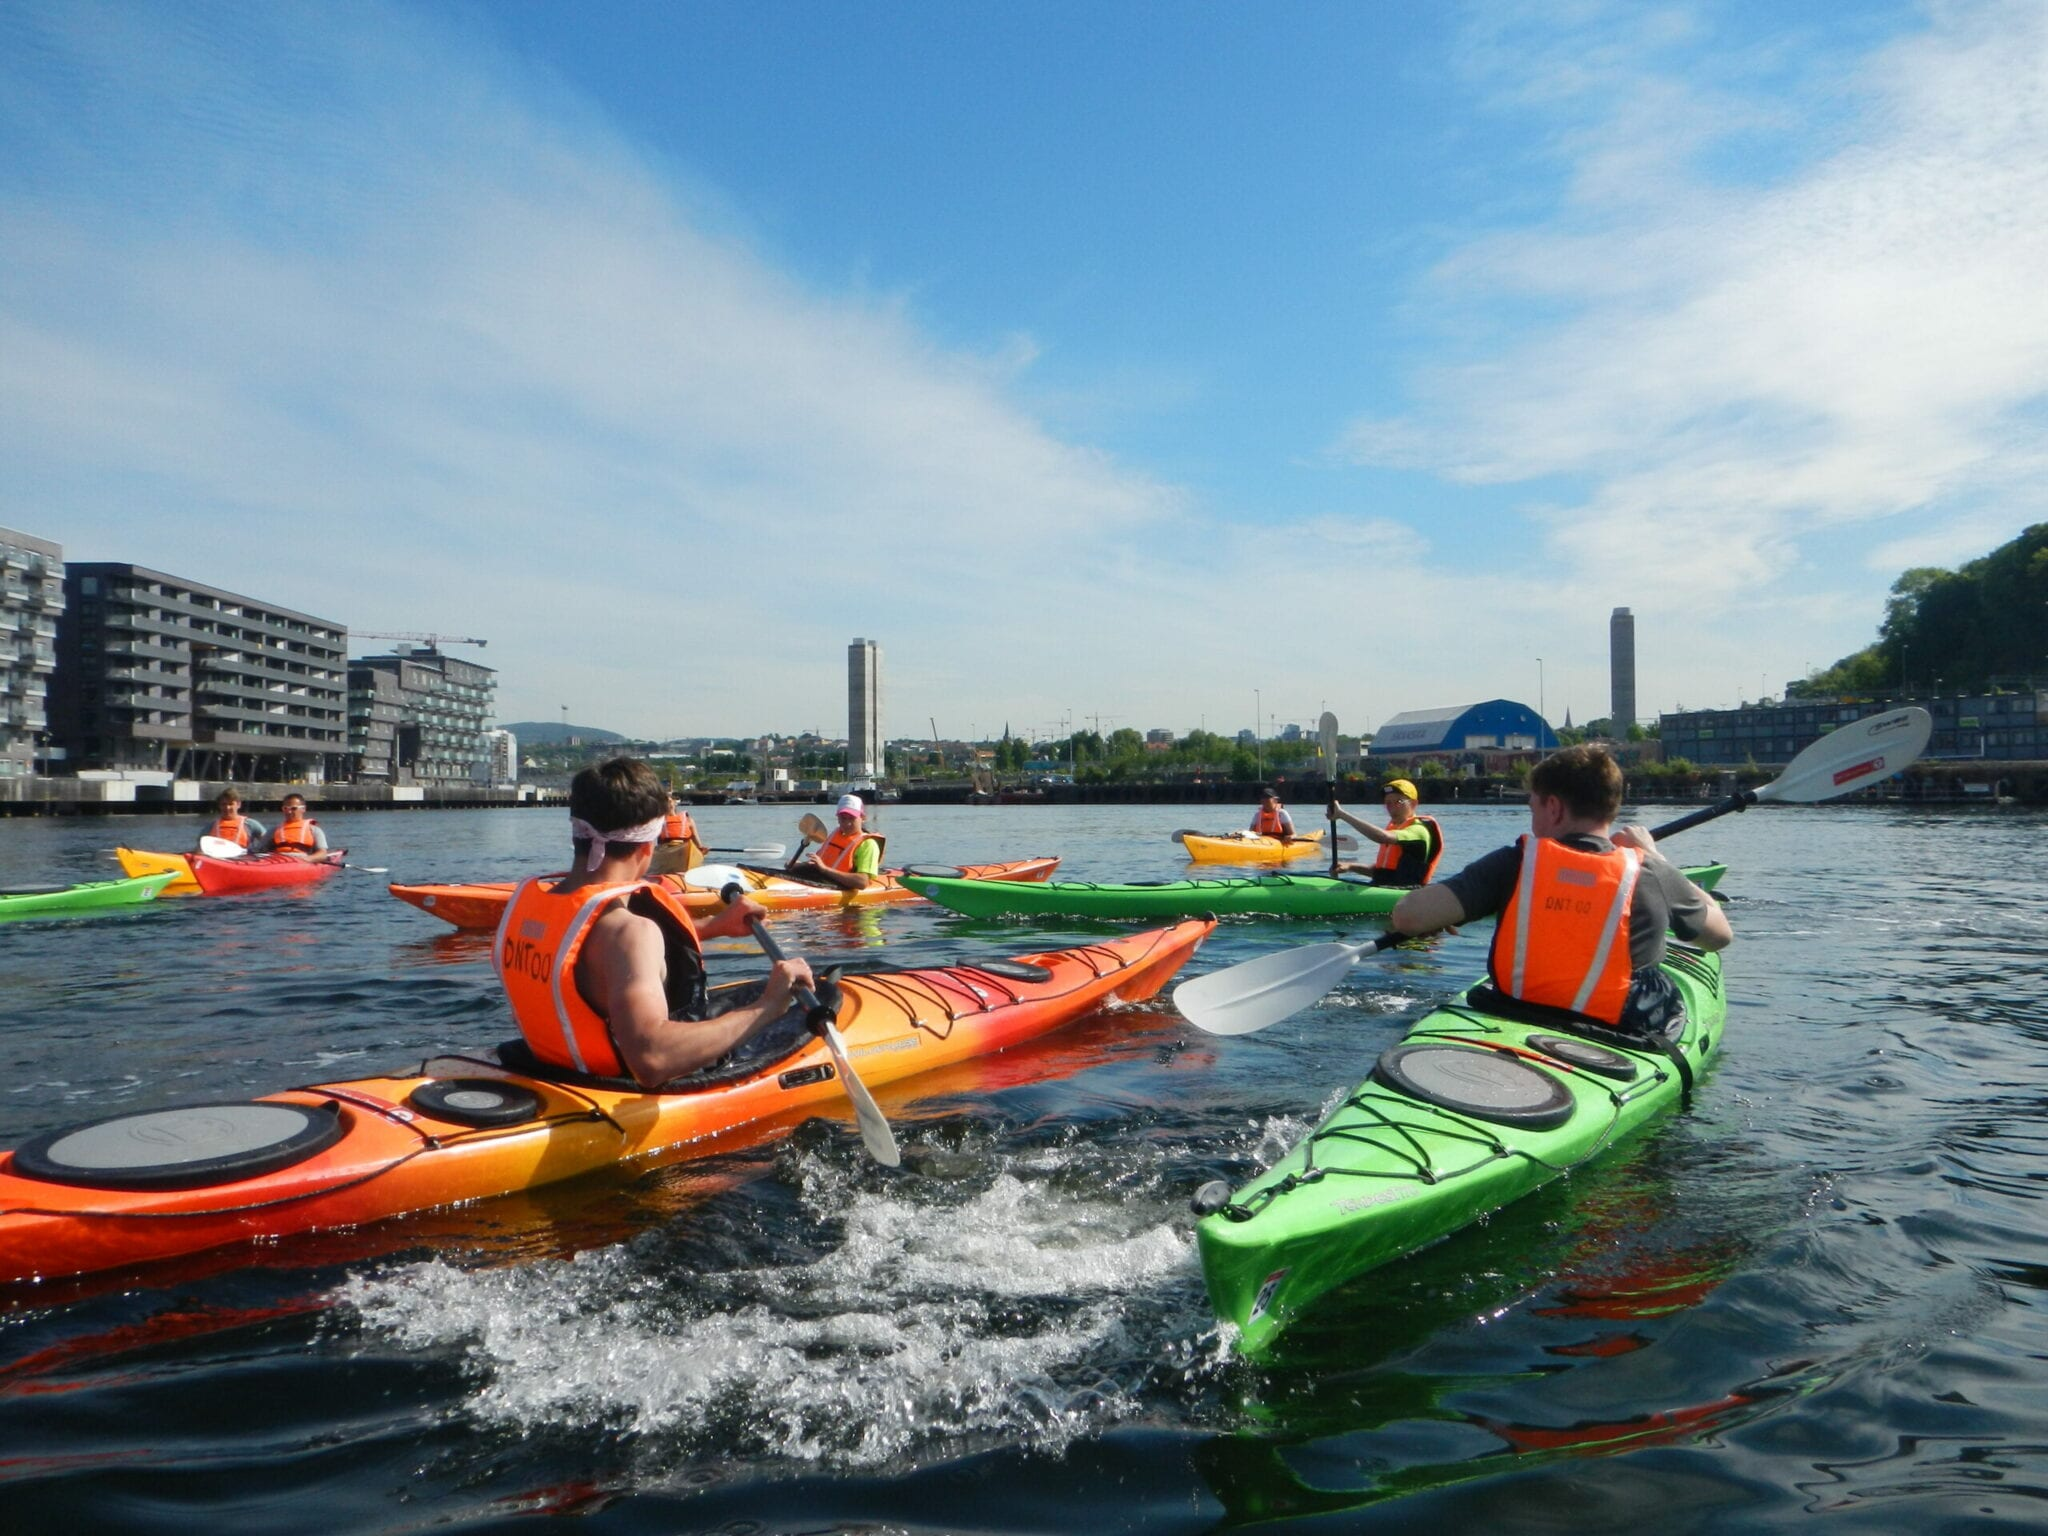 Fun on the water with kayaks